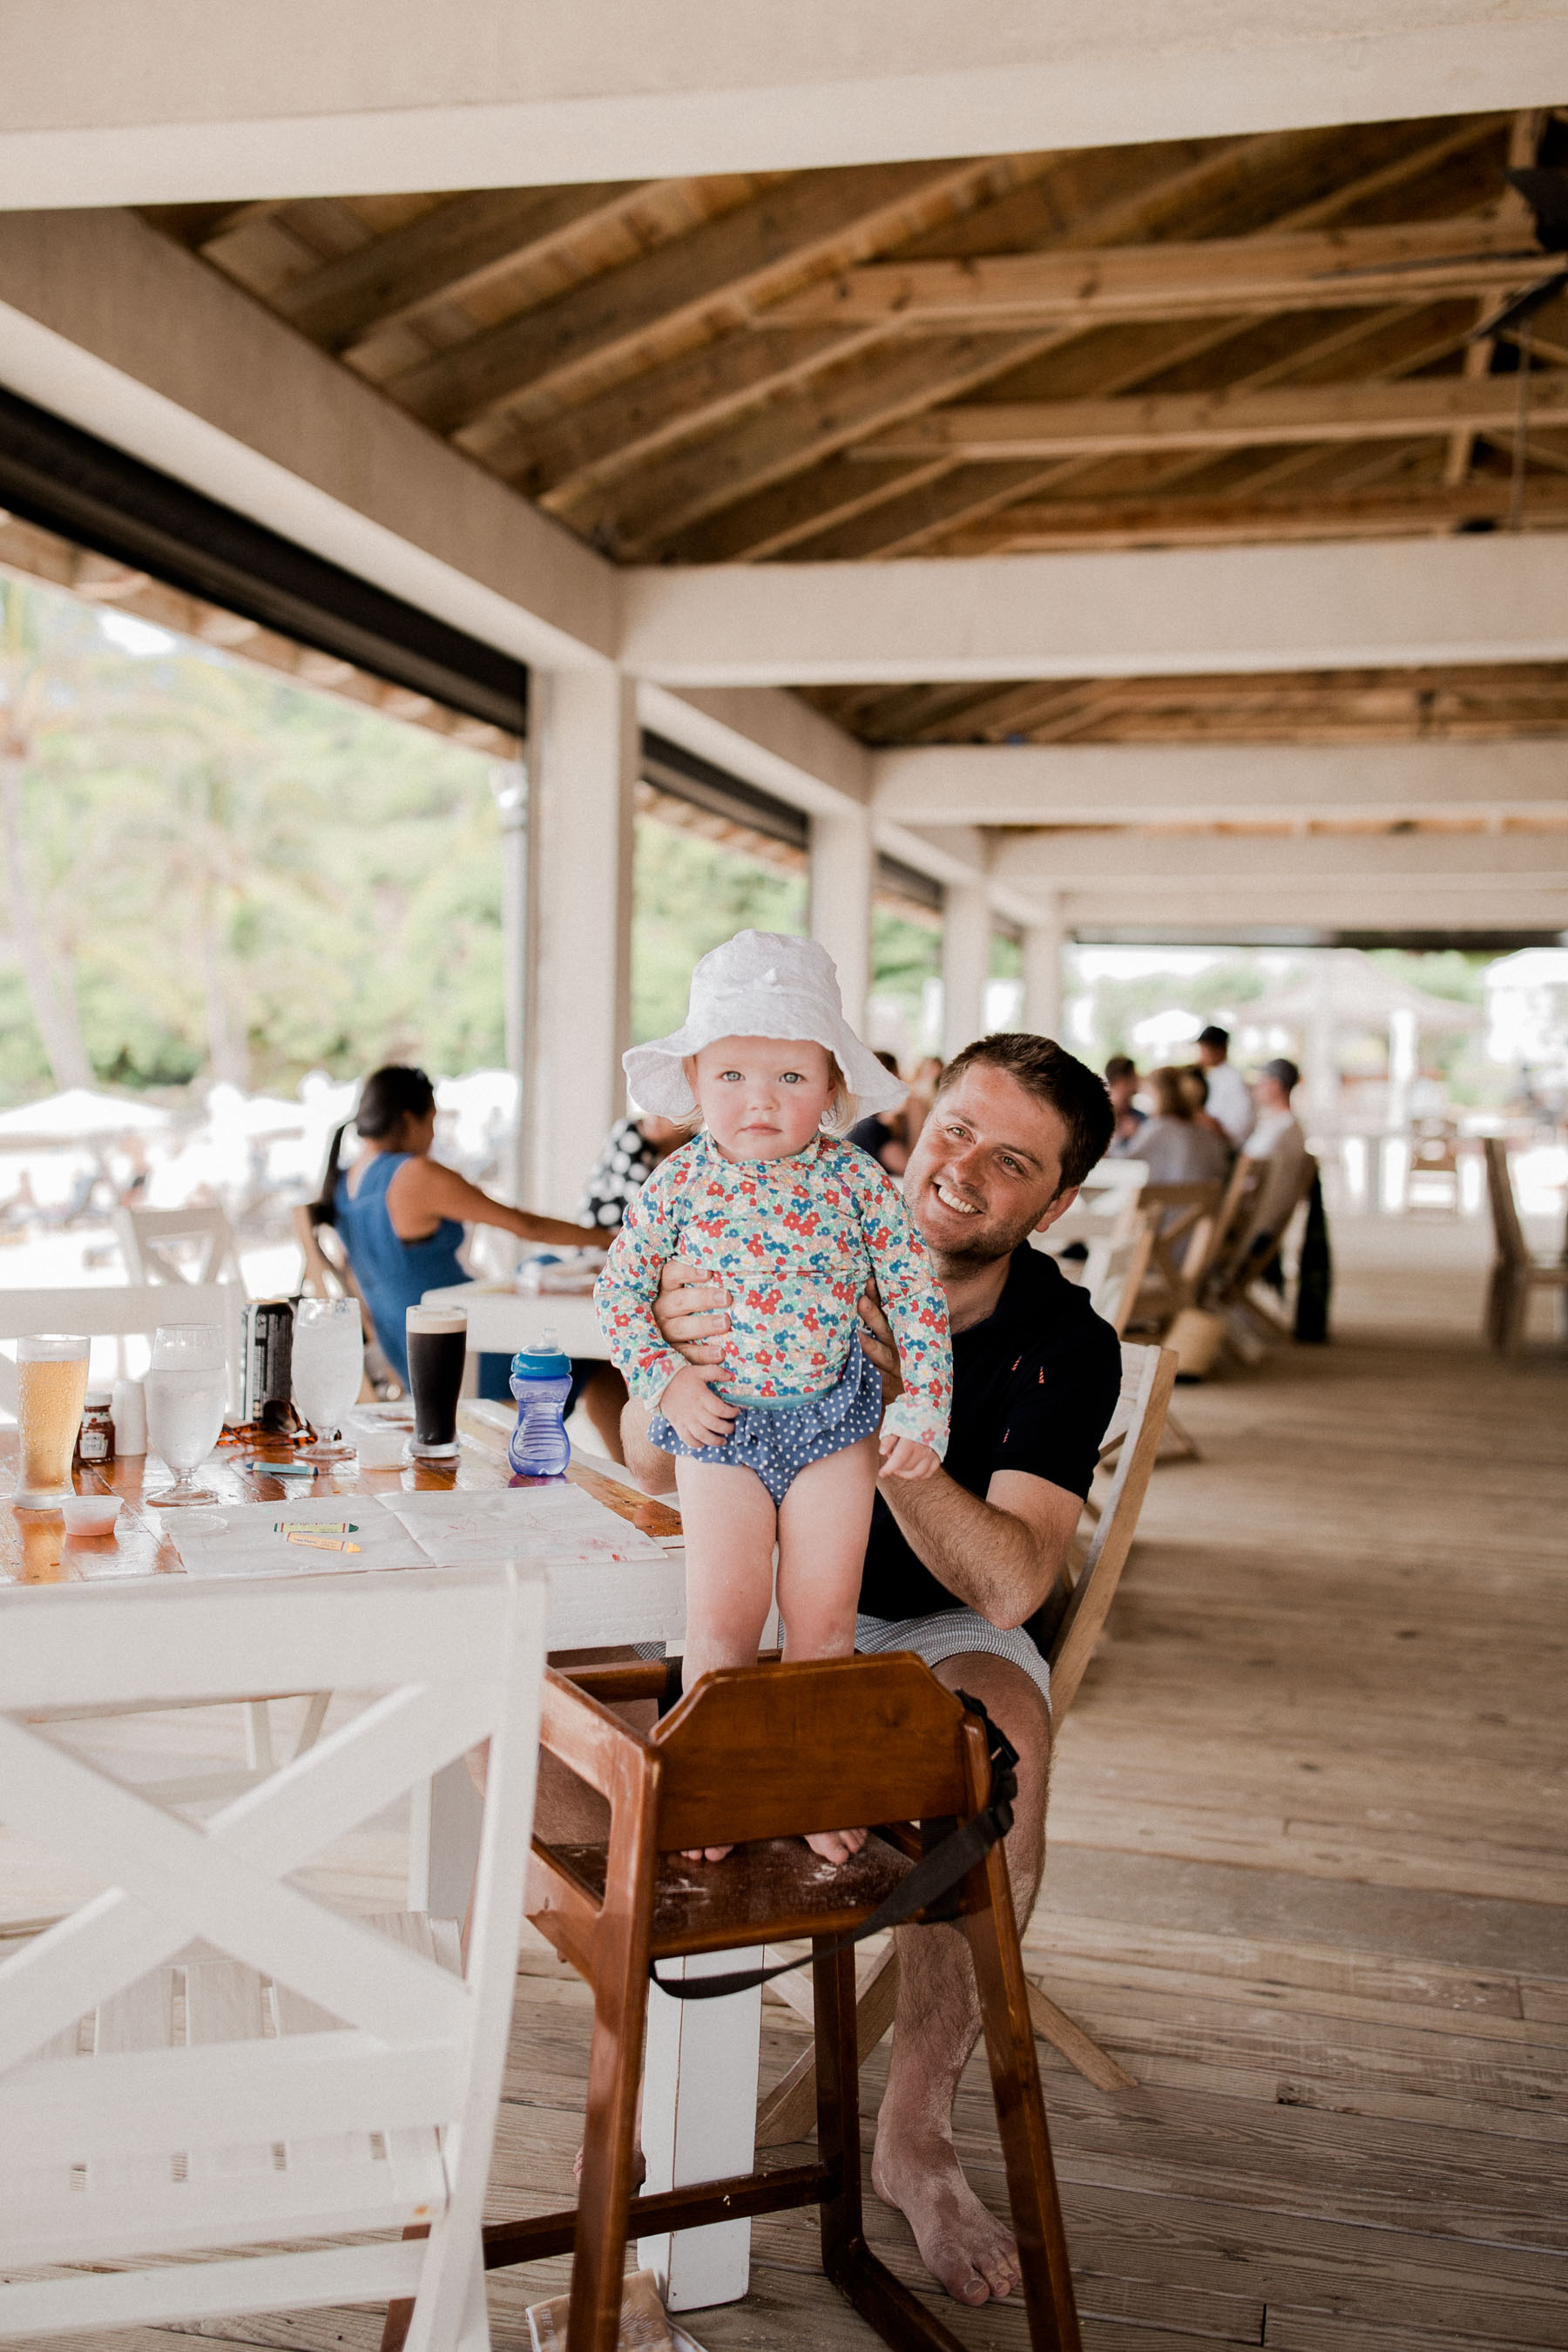 Mitch and Baby Emma at a Private Bermudian Beach | Kelly in the City